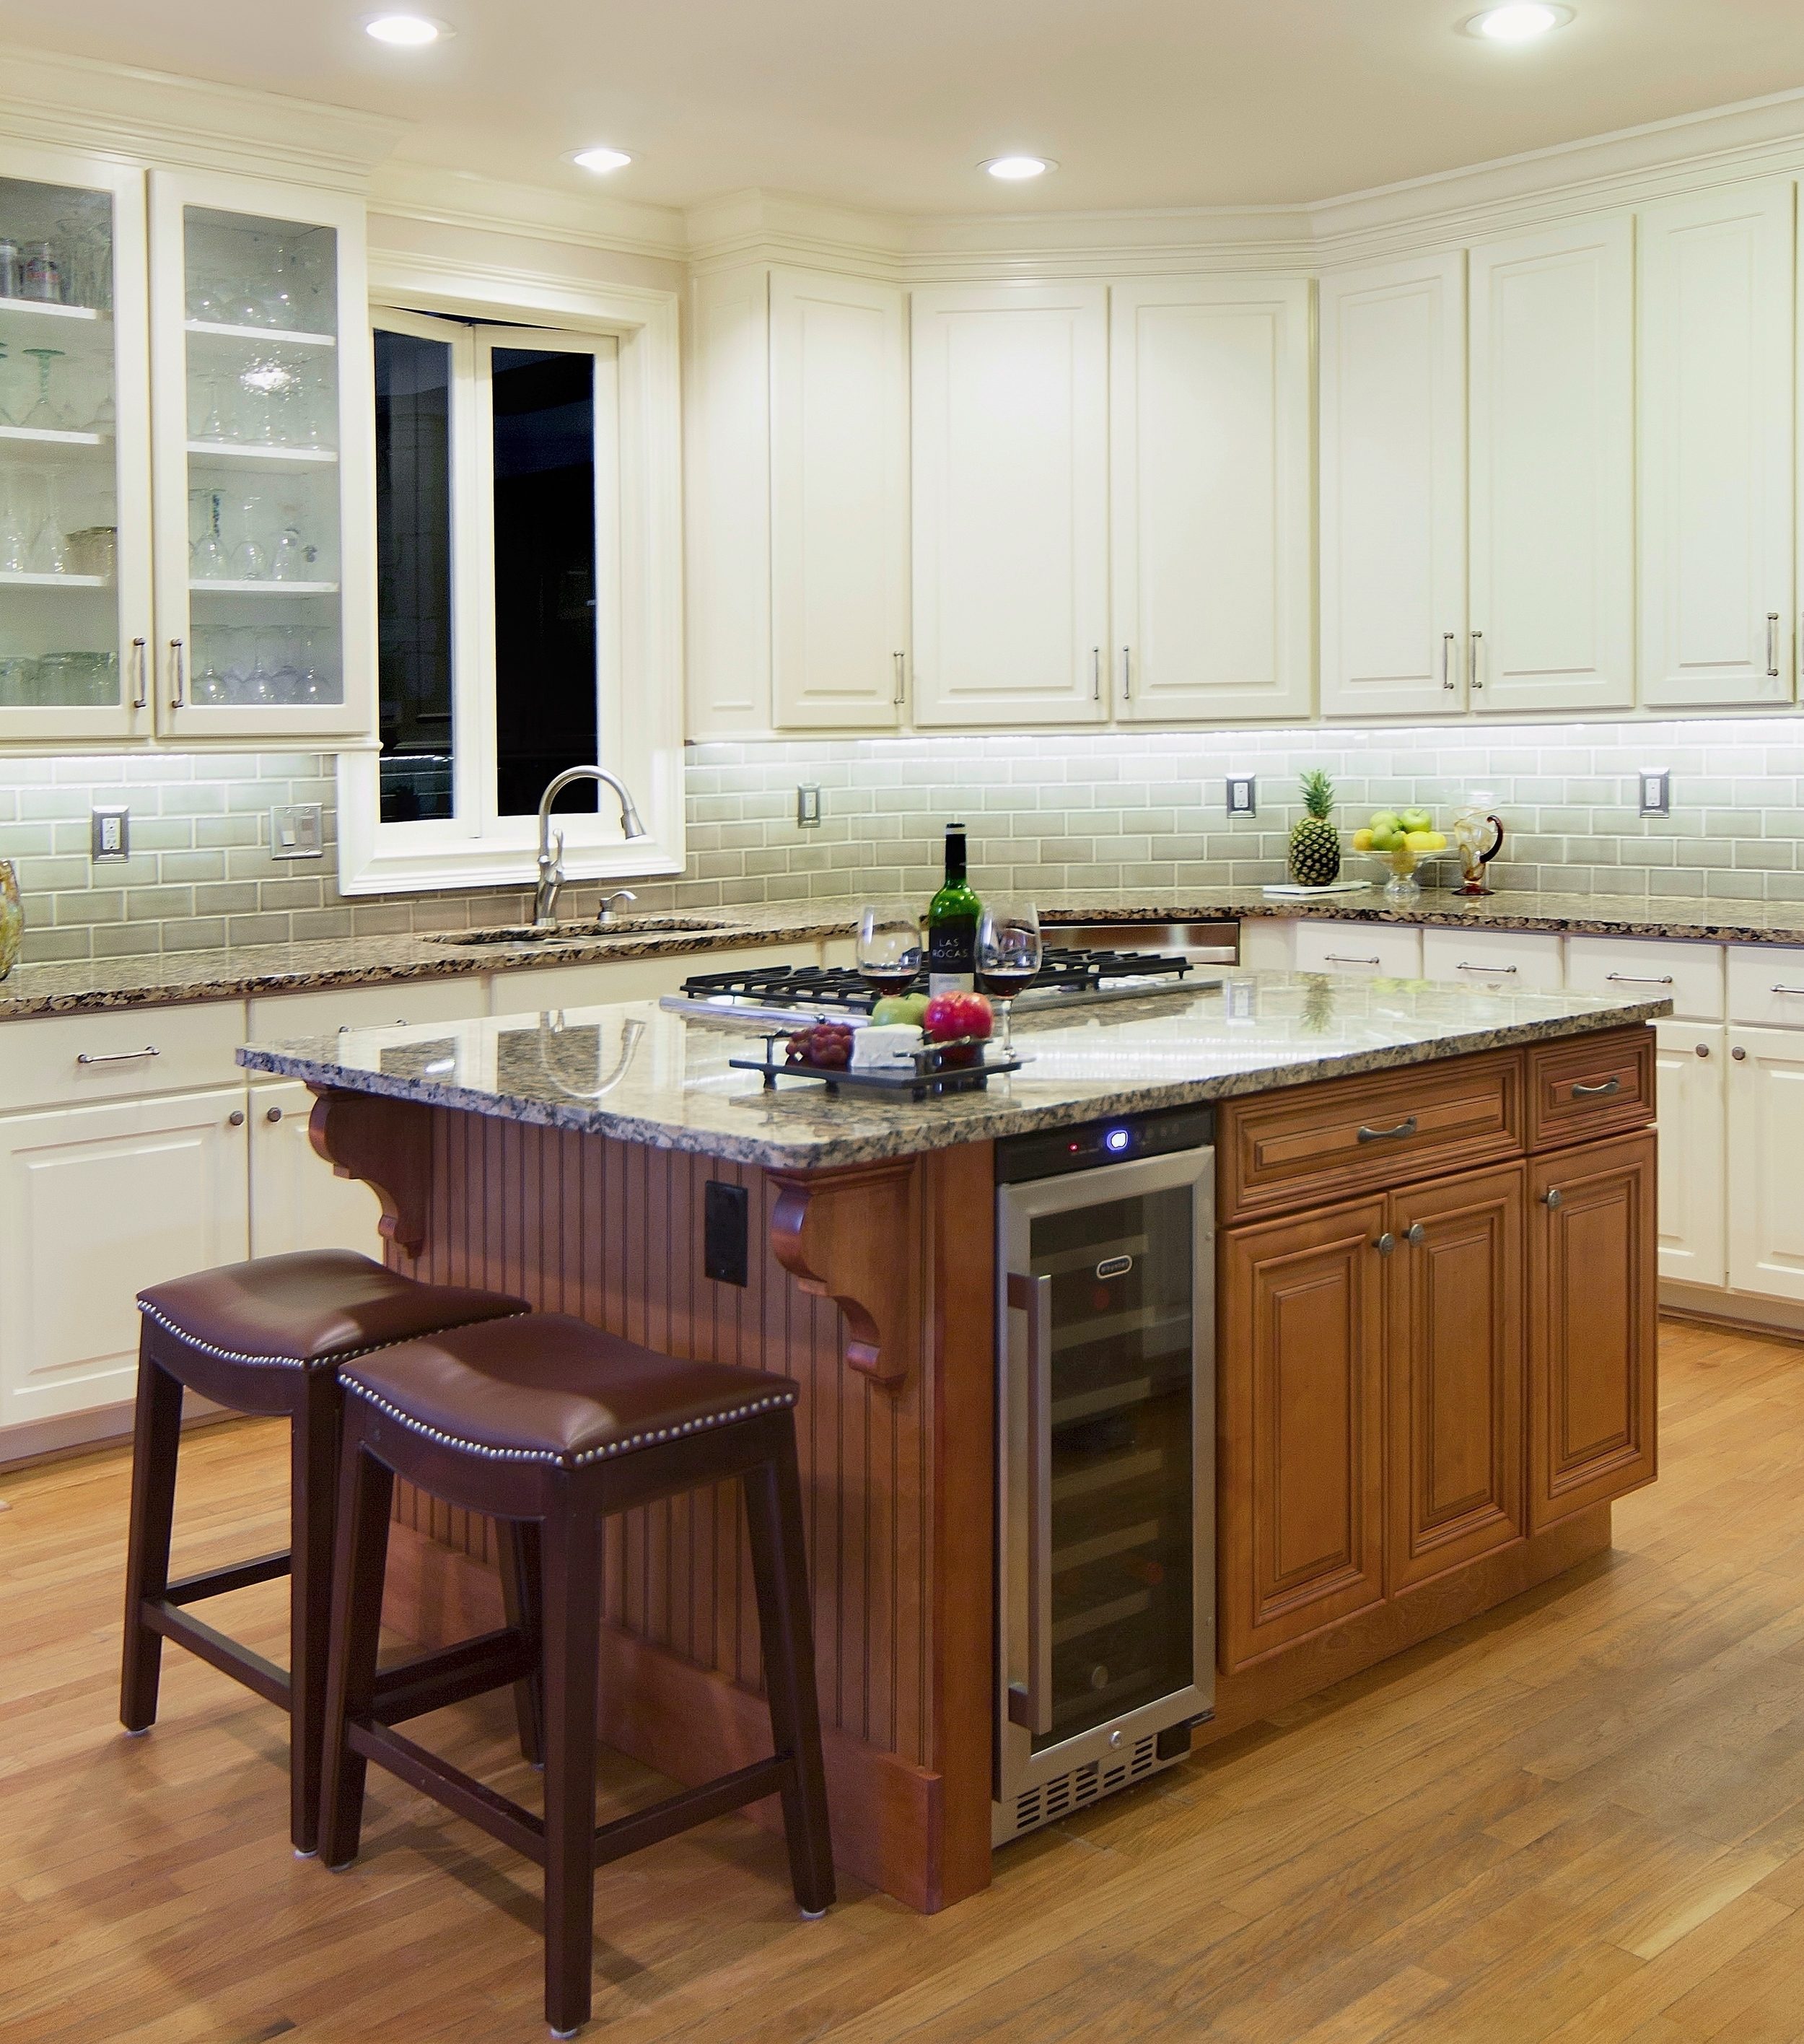 kitchen facelift small remodeling ideas homevisionconcepts 2 jpg